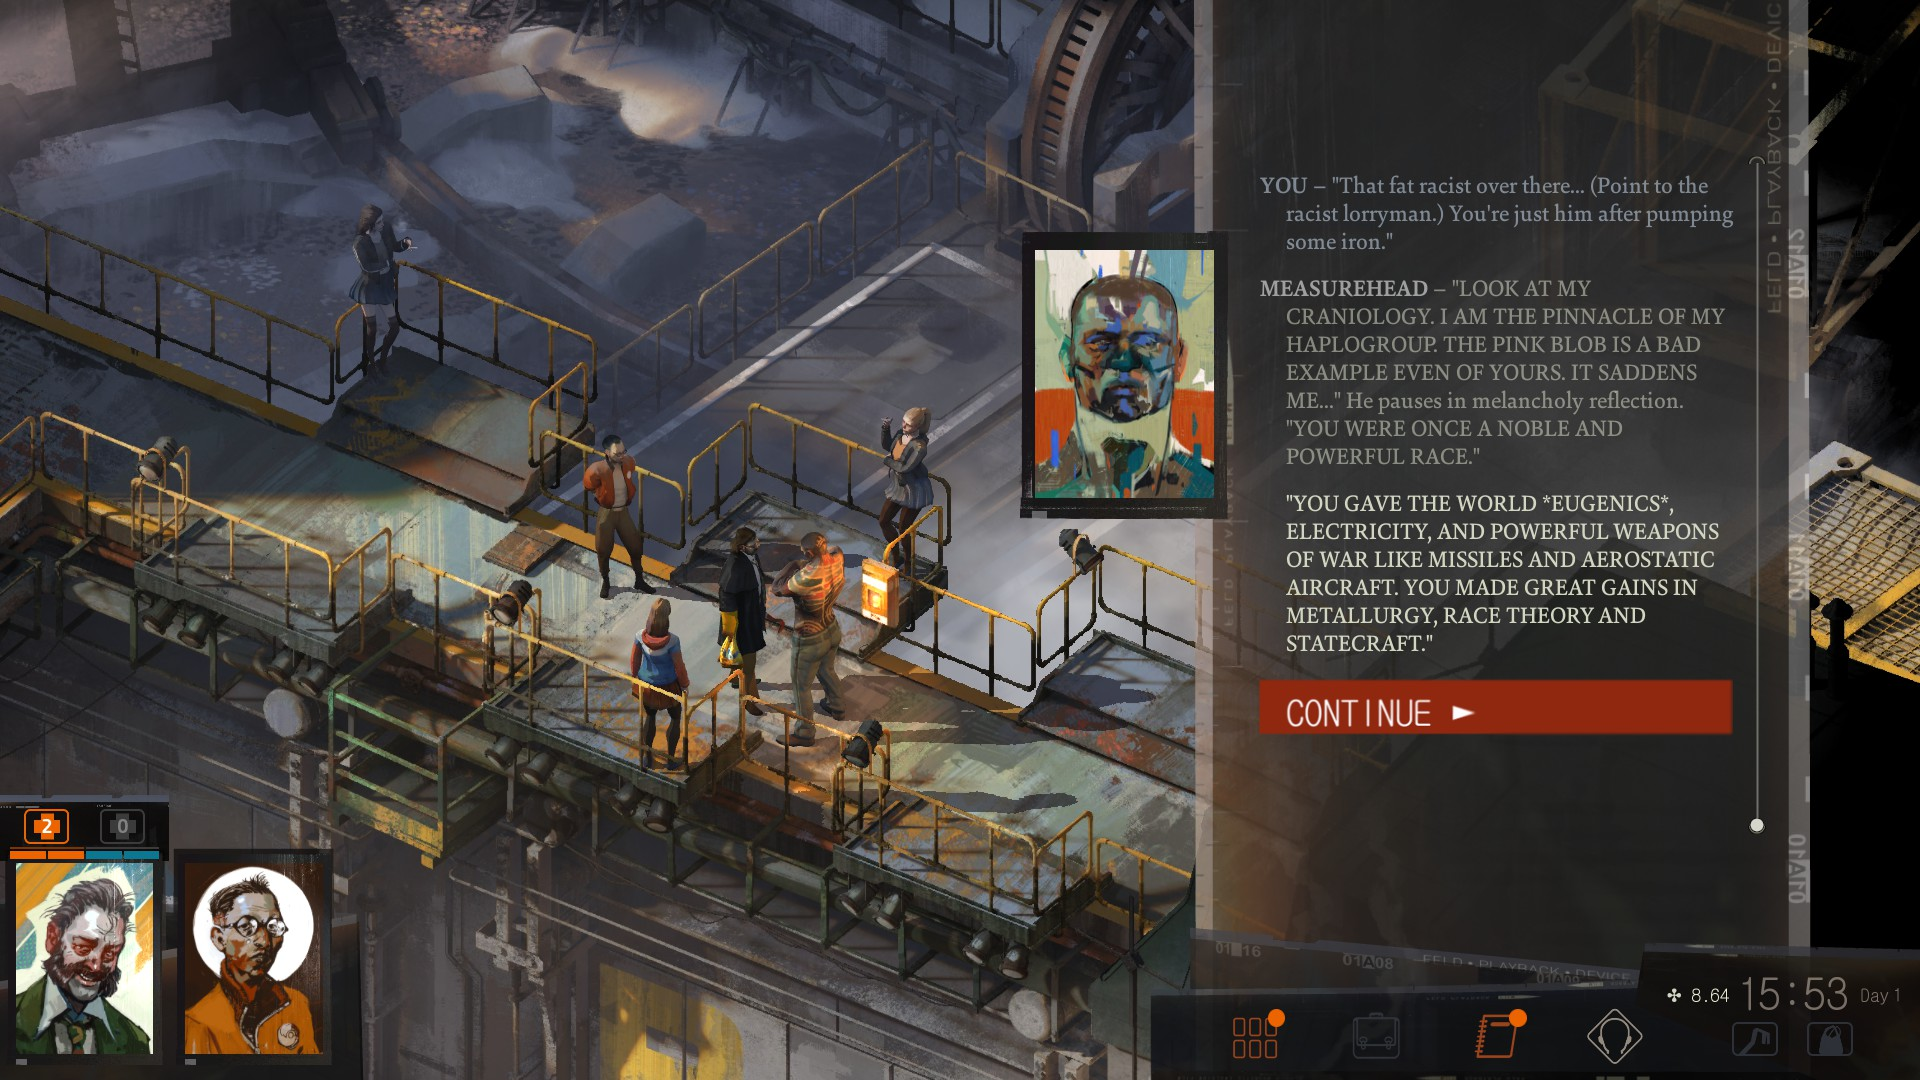 'Disco Elysium' Is a Landmark RPG About the Politics of Our Broken World - VICE